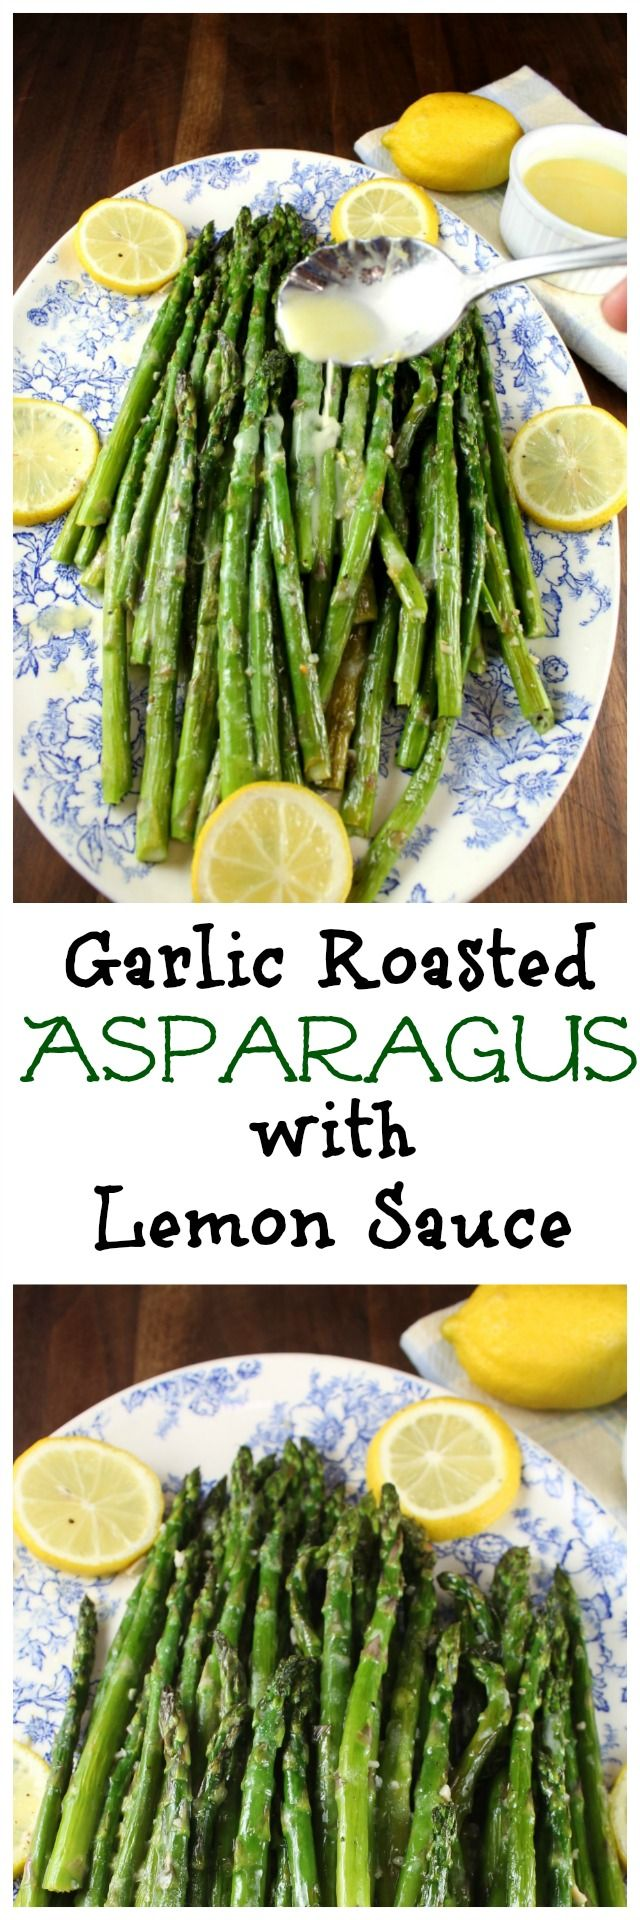 Garlic Roasted Asparagus with Lemon Sauce Recipe from MissintheKitchen.com